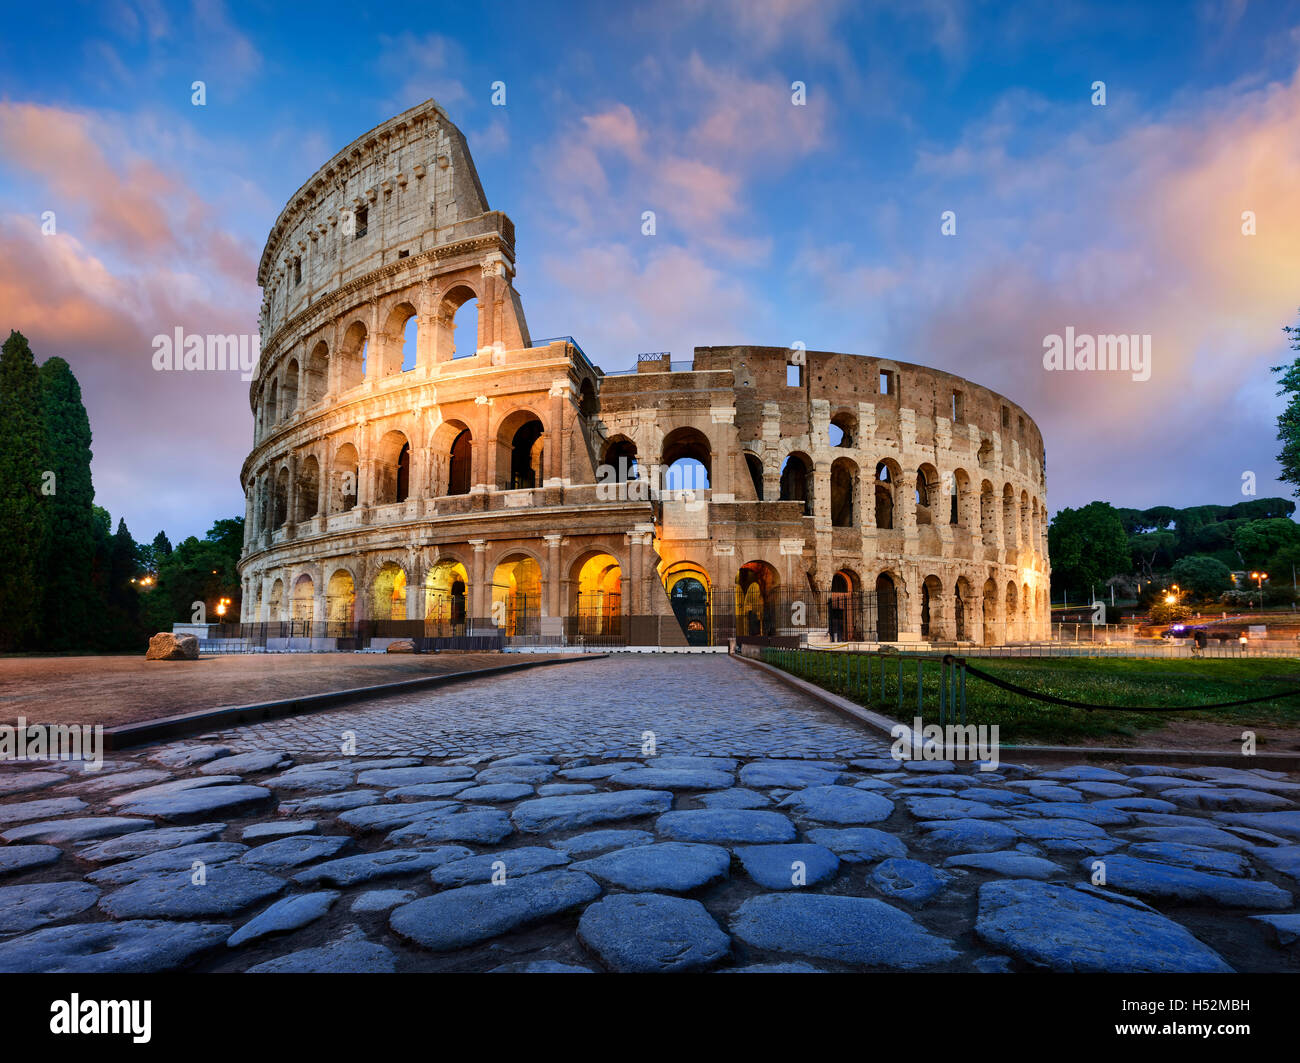 View of Colosseum in Rome and morning sun, Italy, Europe. - Stock Image